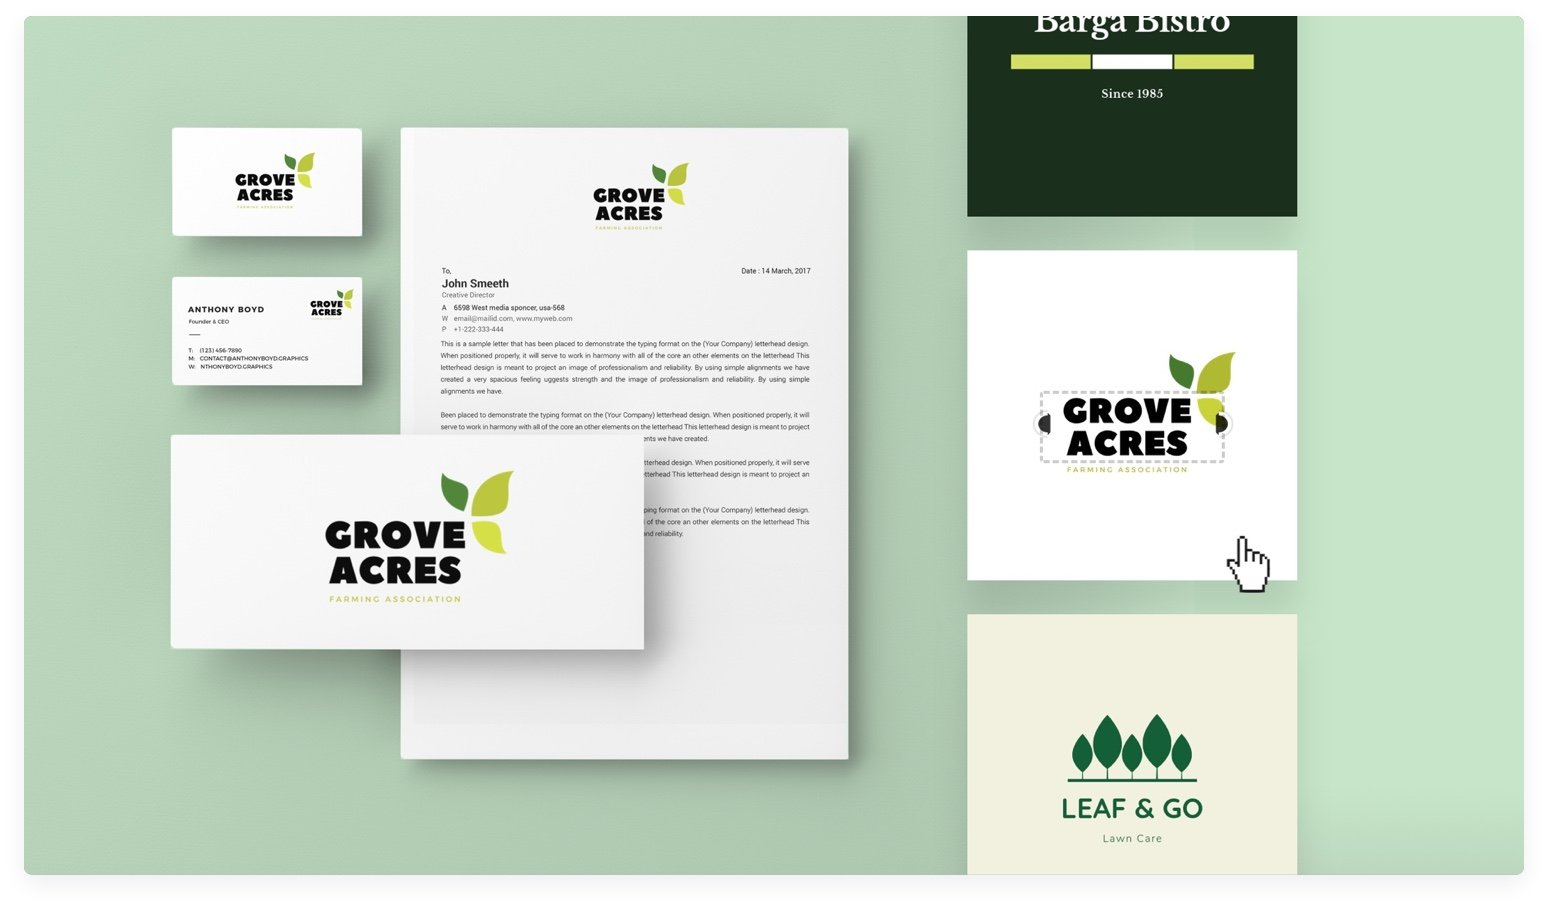 Business Logo Design App Free: Free Online Logo Maker: Design a Custom Logo - Canvarh:canva.com,Design